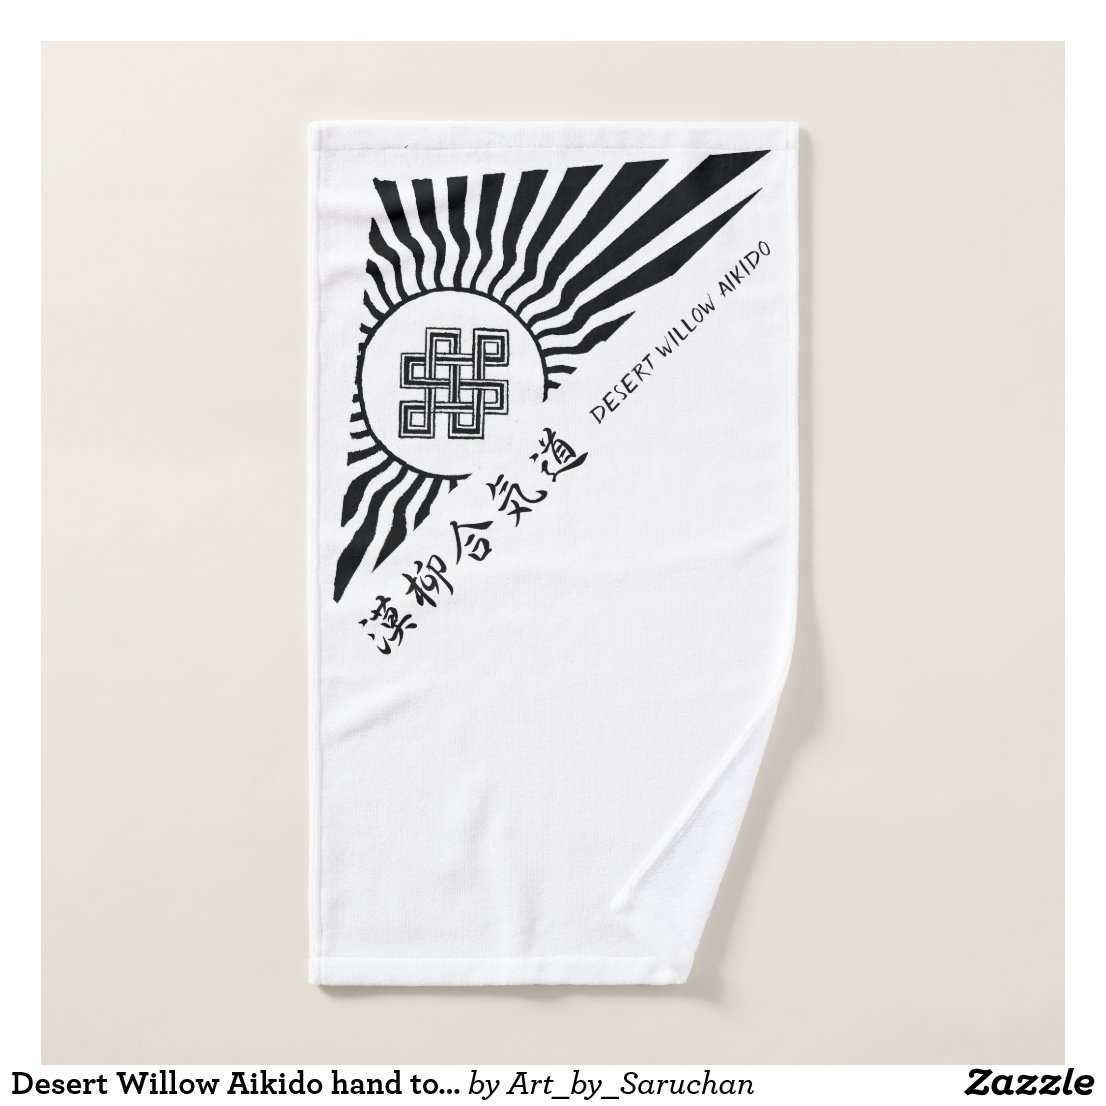 Desert Willow Aikido hand towel